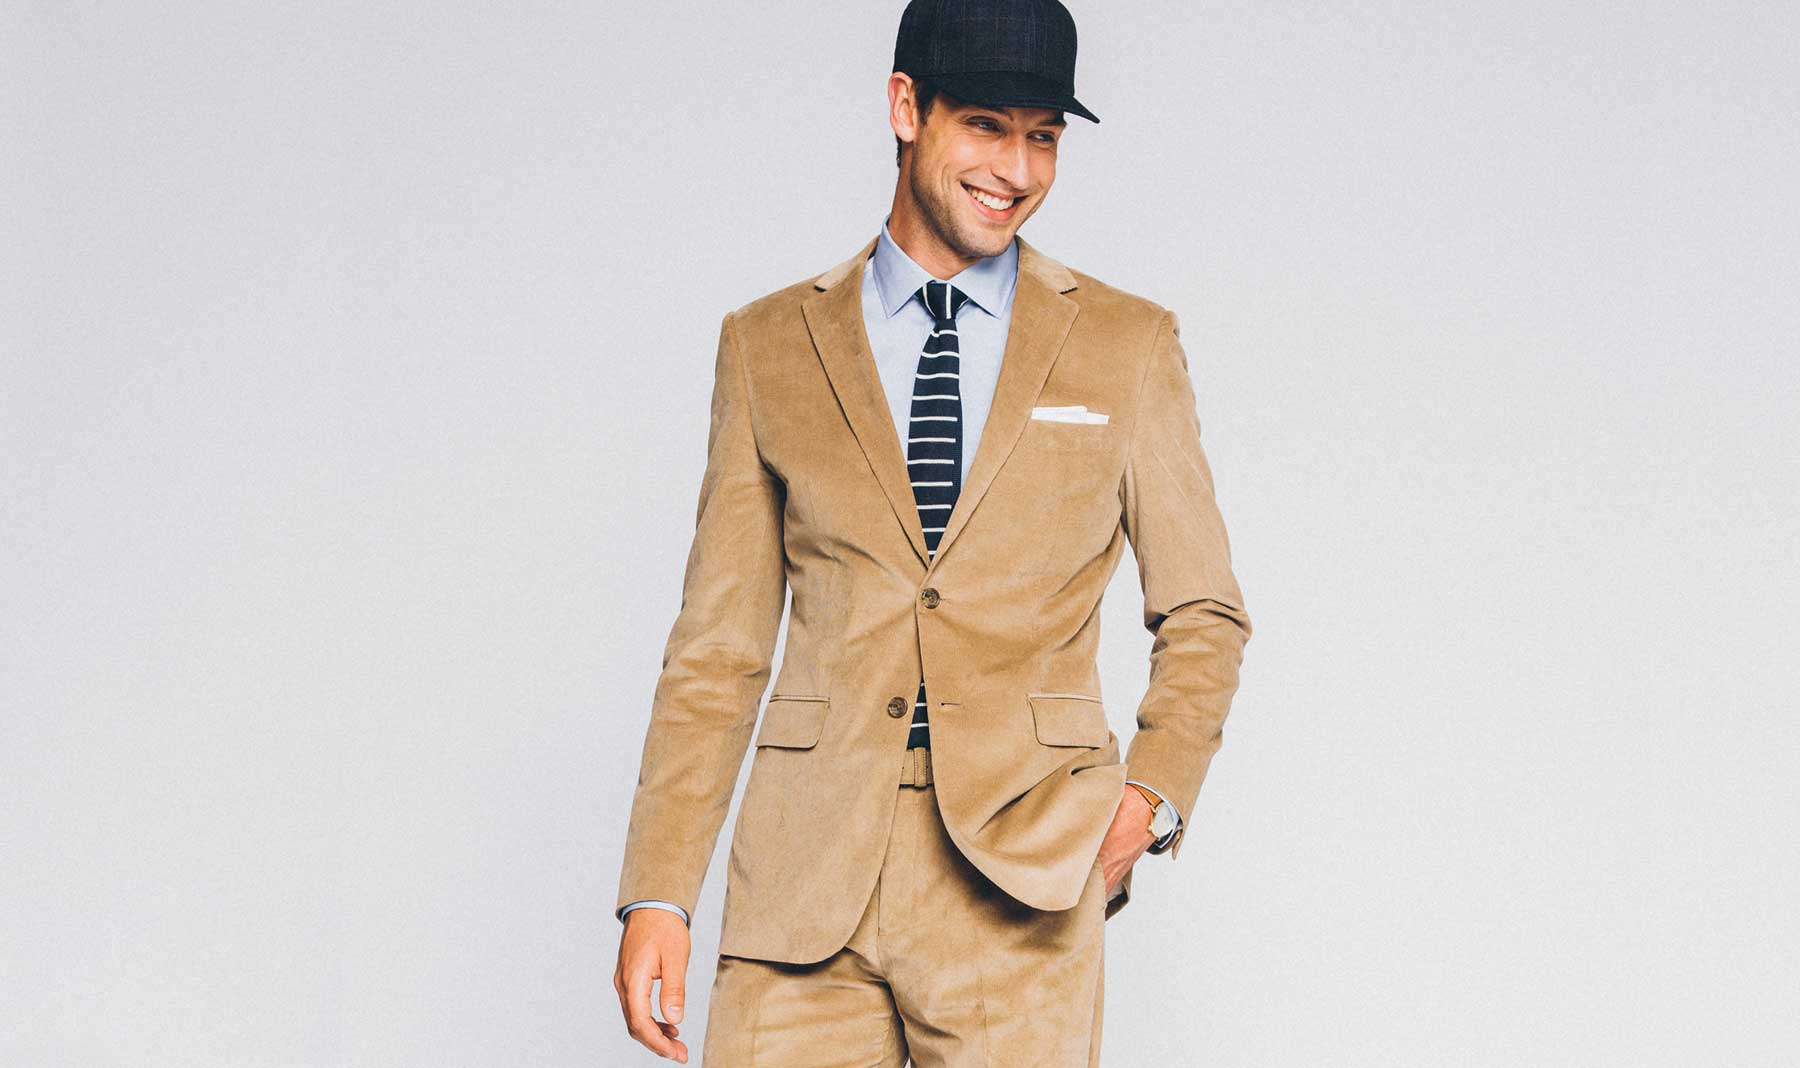 Keeping it cool and casual in a tan corduroy suit.